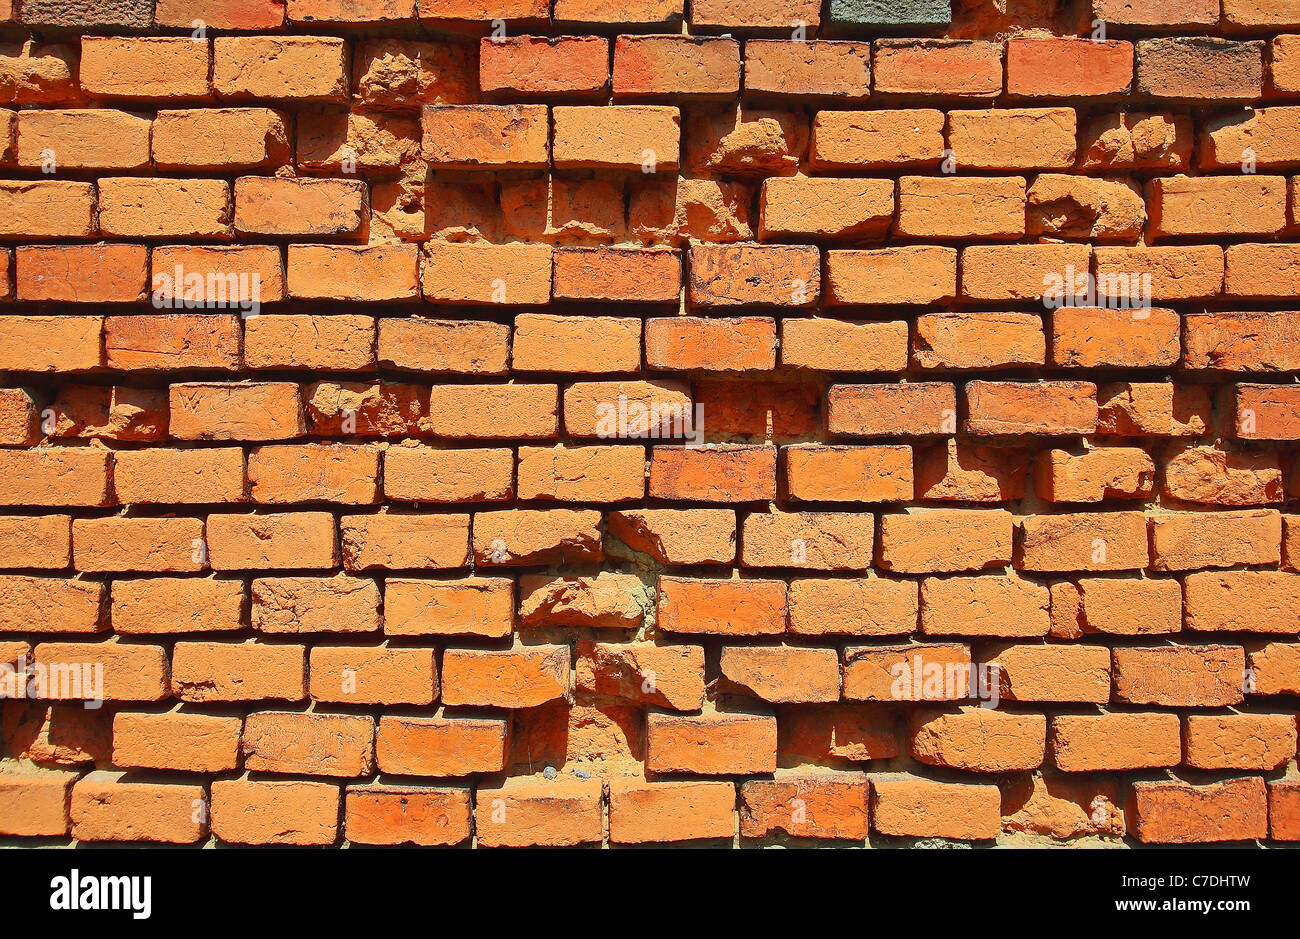 old corrupted red brick wall - Stock Image